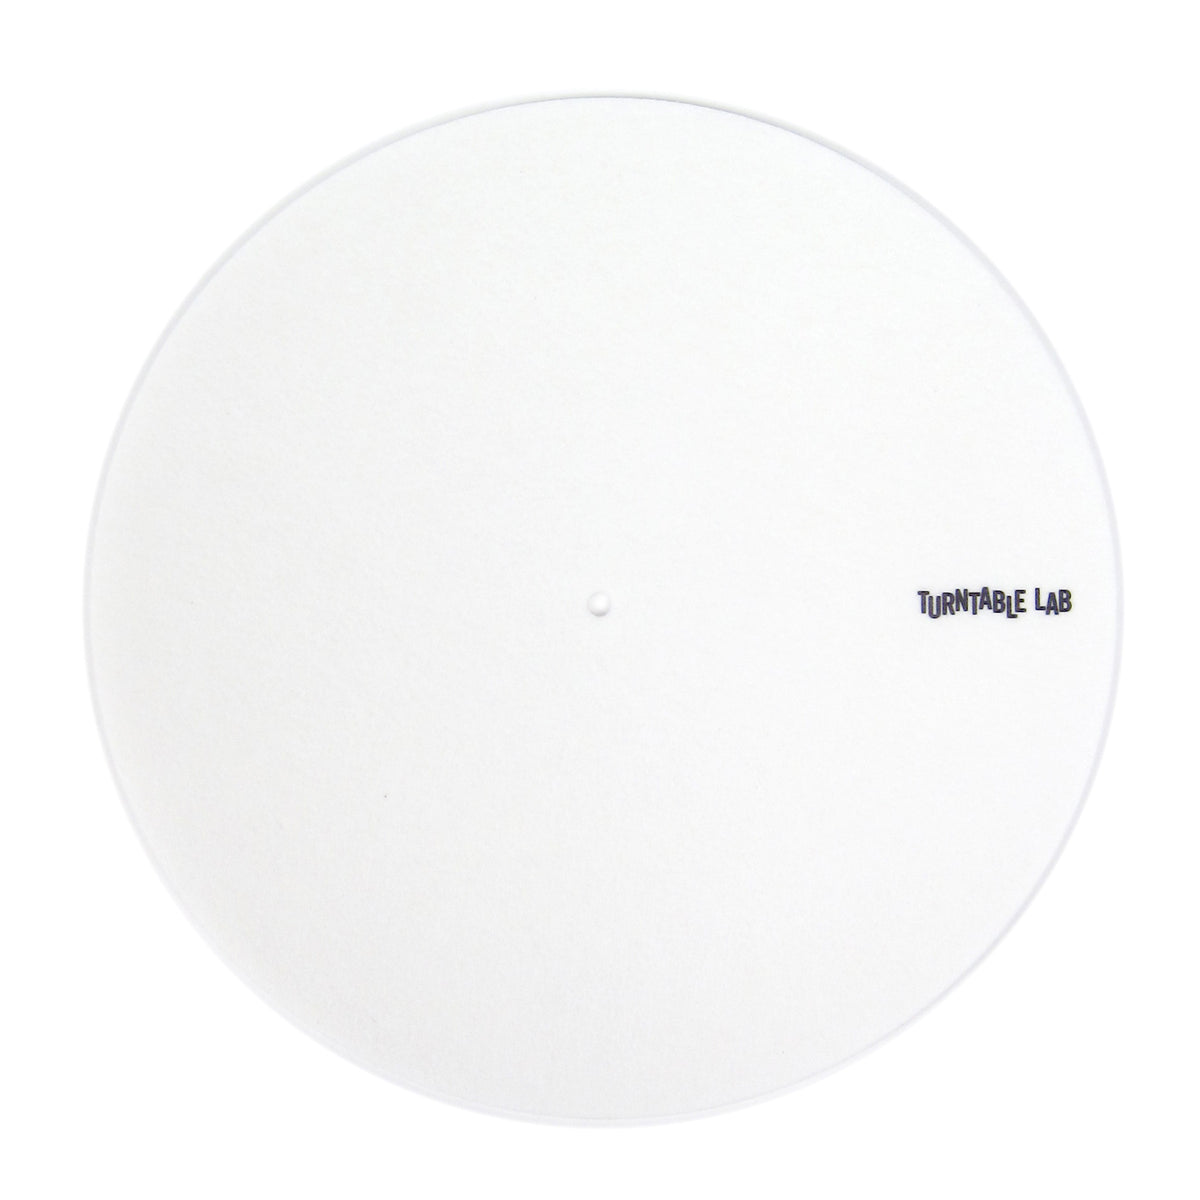 Turntable Lab: Pro Thin Slipmats (Technics Style) - White